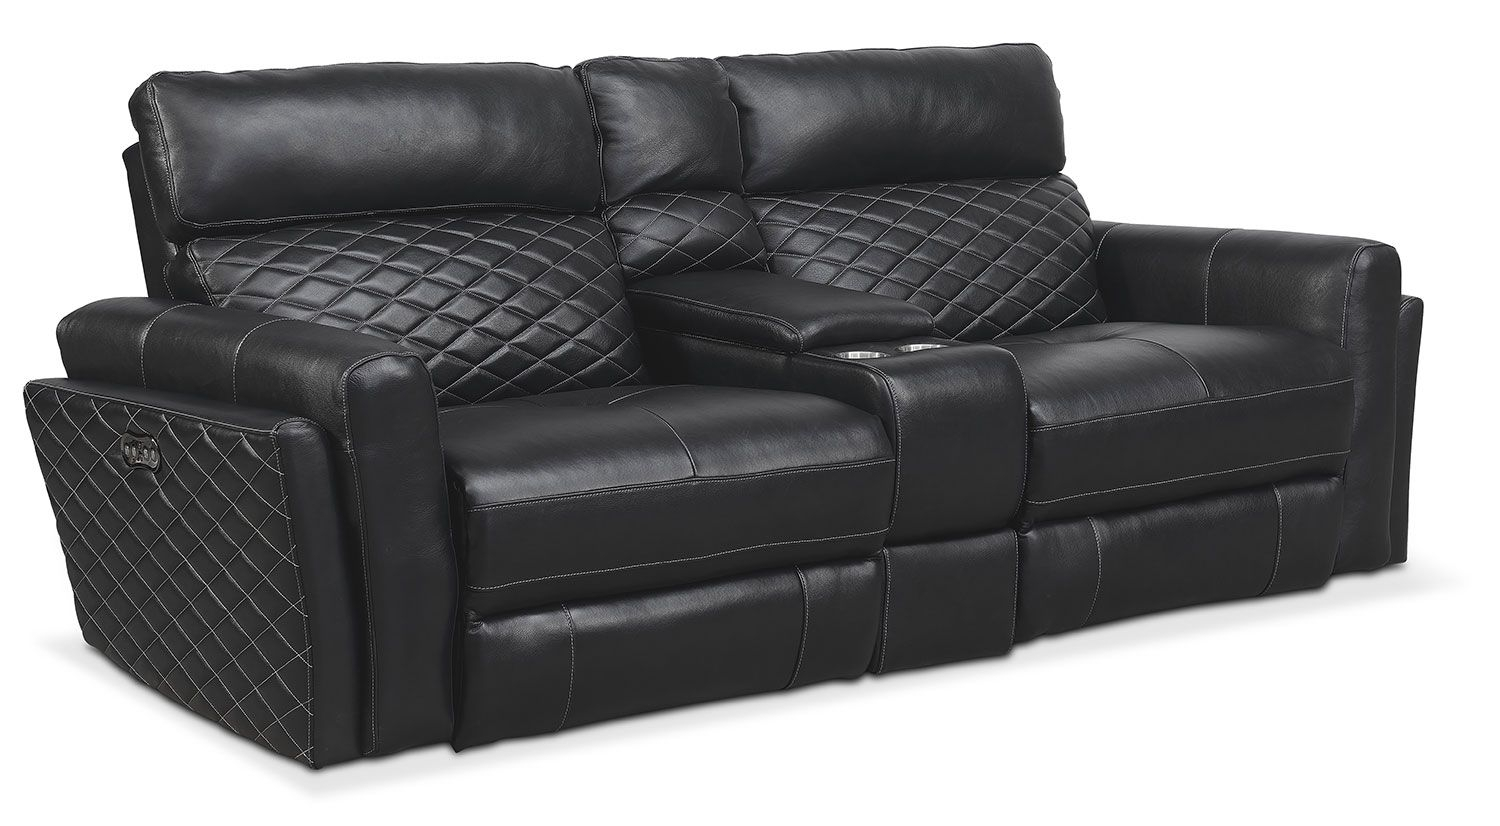 Catalina 3-Piece Power Reclining Sofa With Console - Black within Marcus Grey 6 Piece Sectionals With  Power Headrest & Usb (Image 9 of 30)